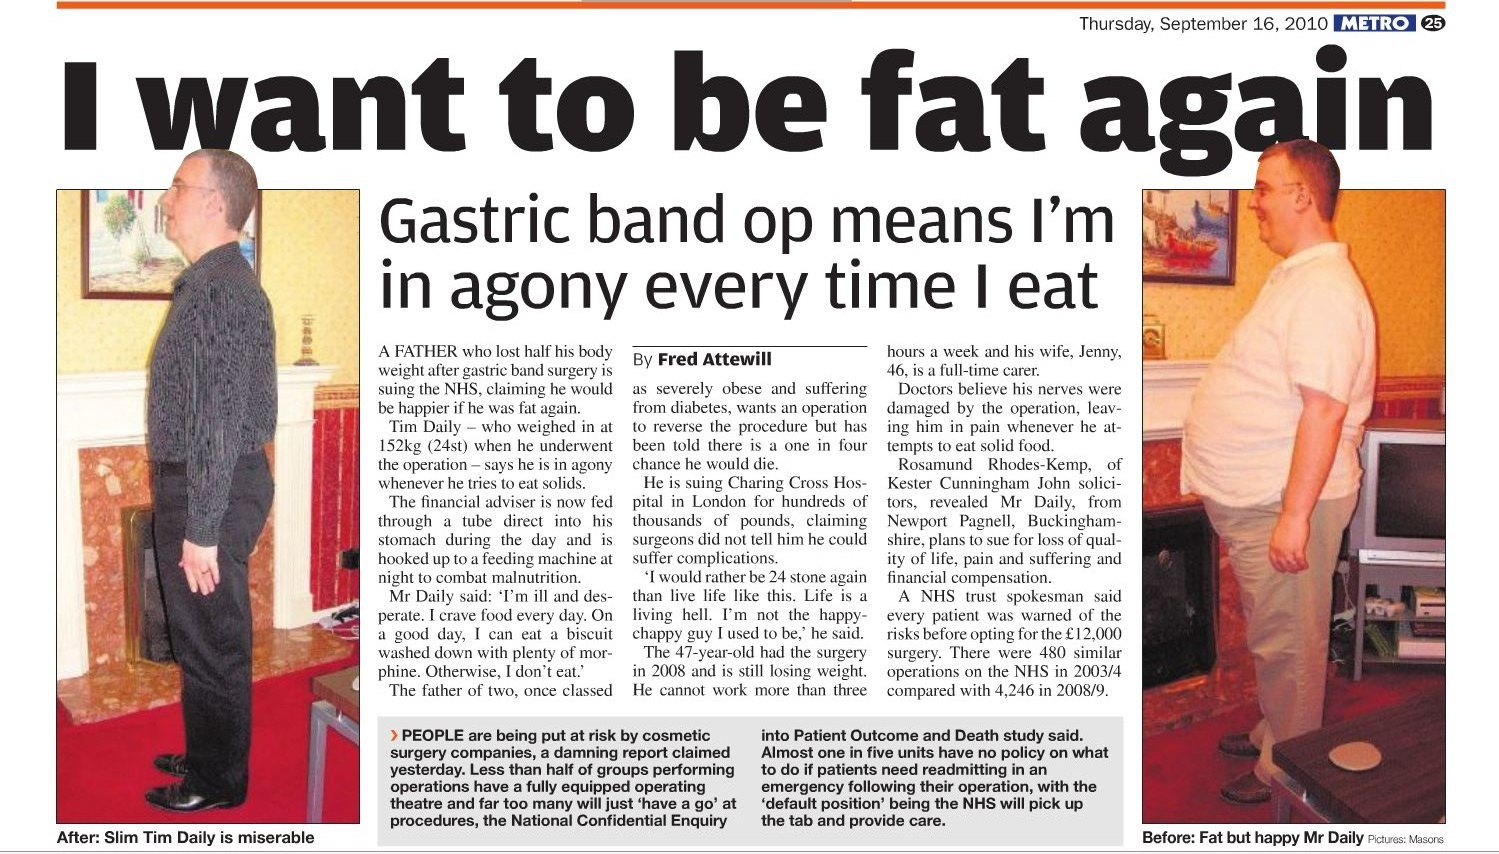 How to write a newspaper article - I want to be fat again - English ...